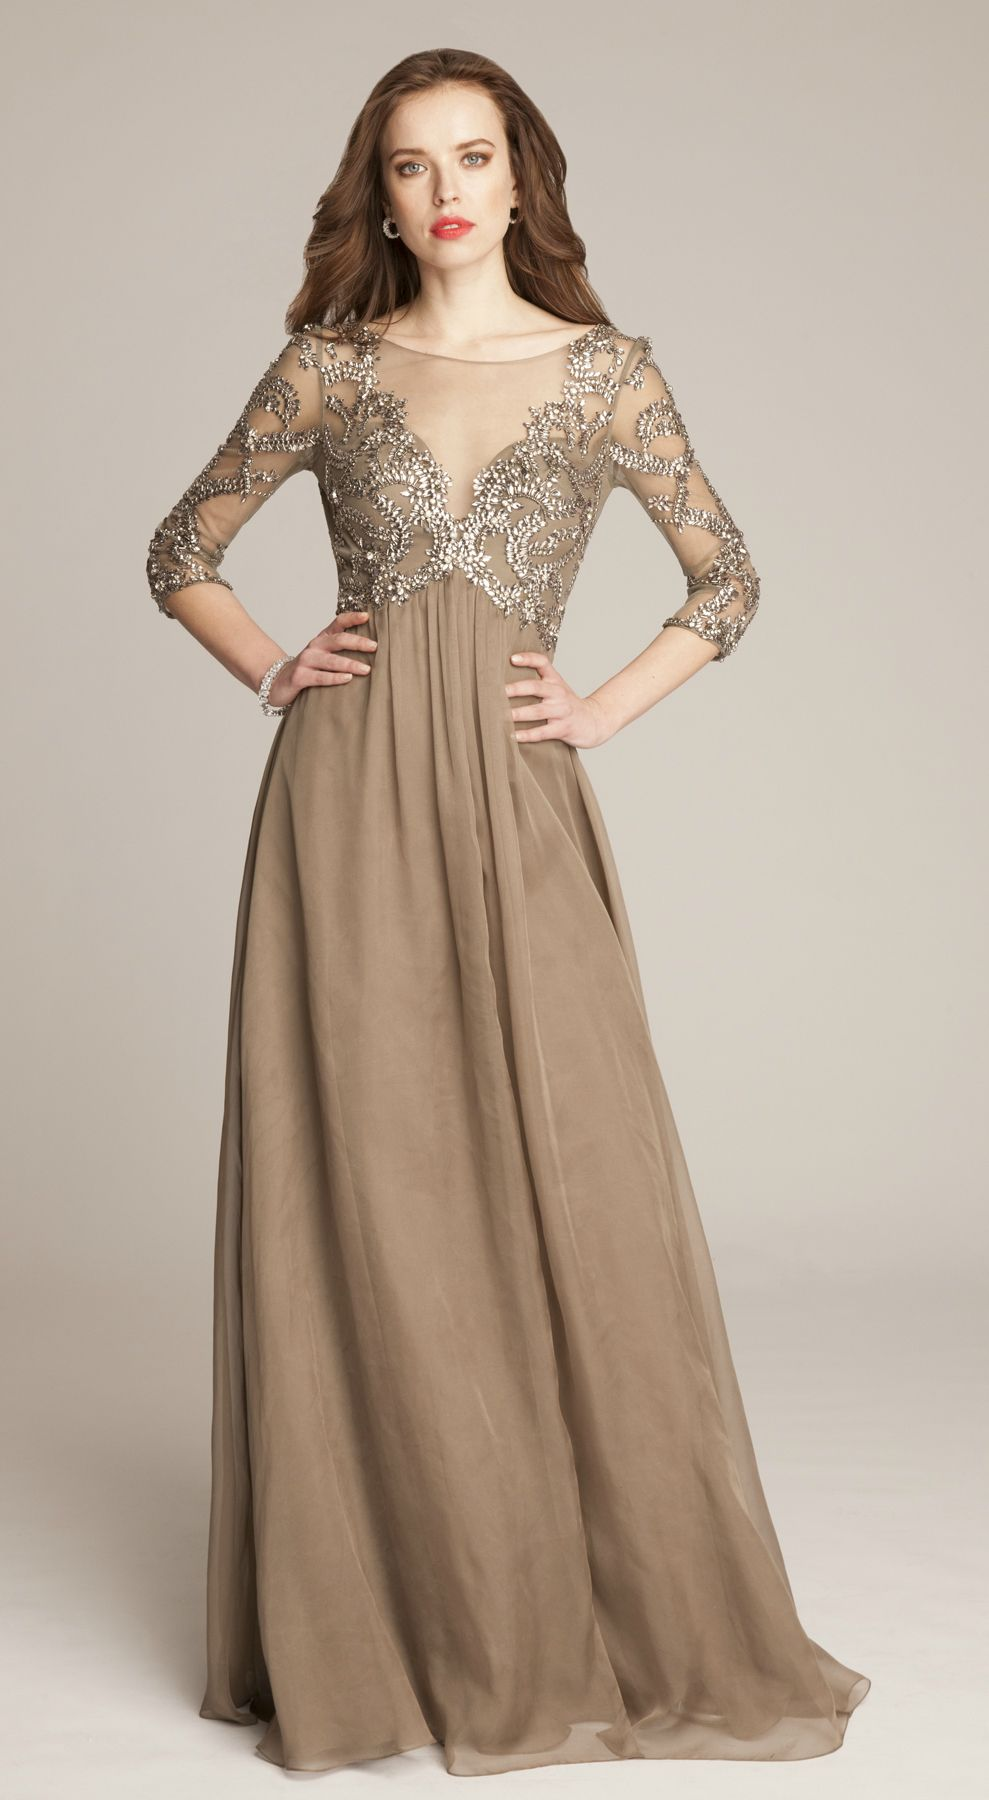 Fall mother of the bride dresses fall wedding dresses for Dresses for a fall wedding